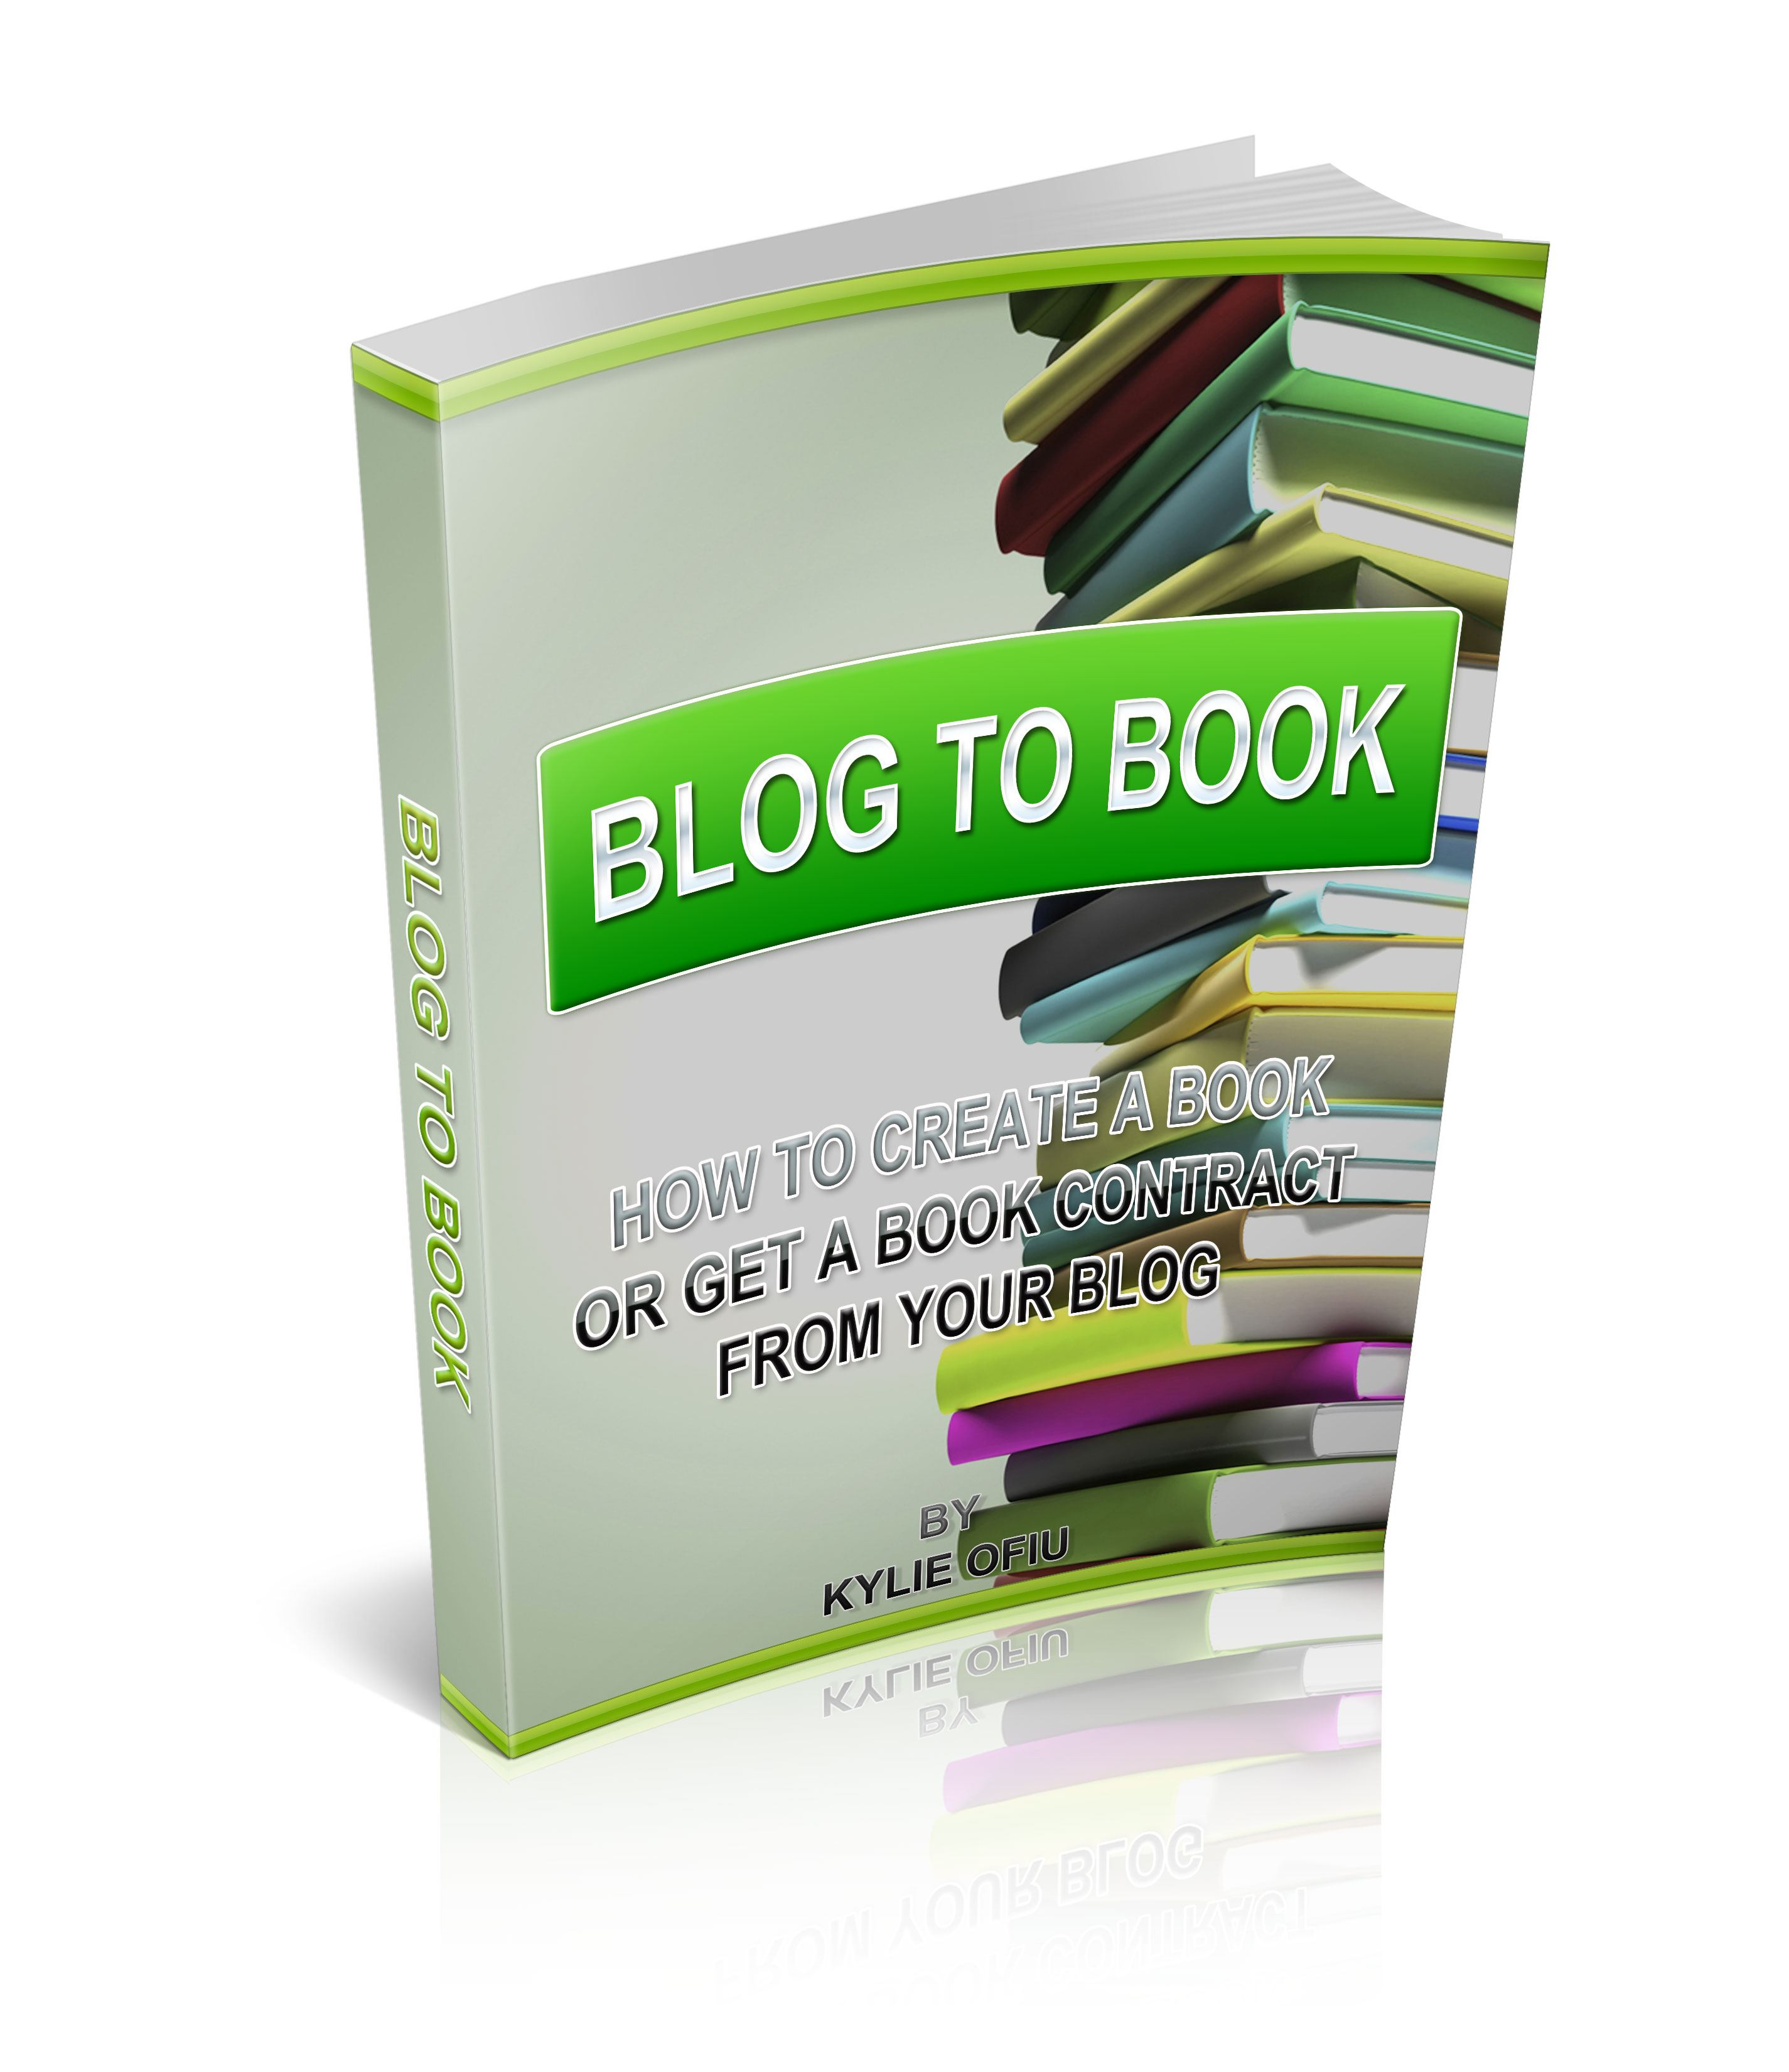 Blog to Book